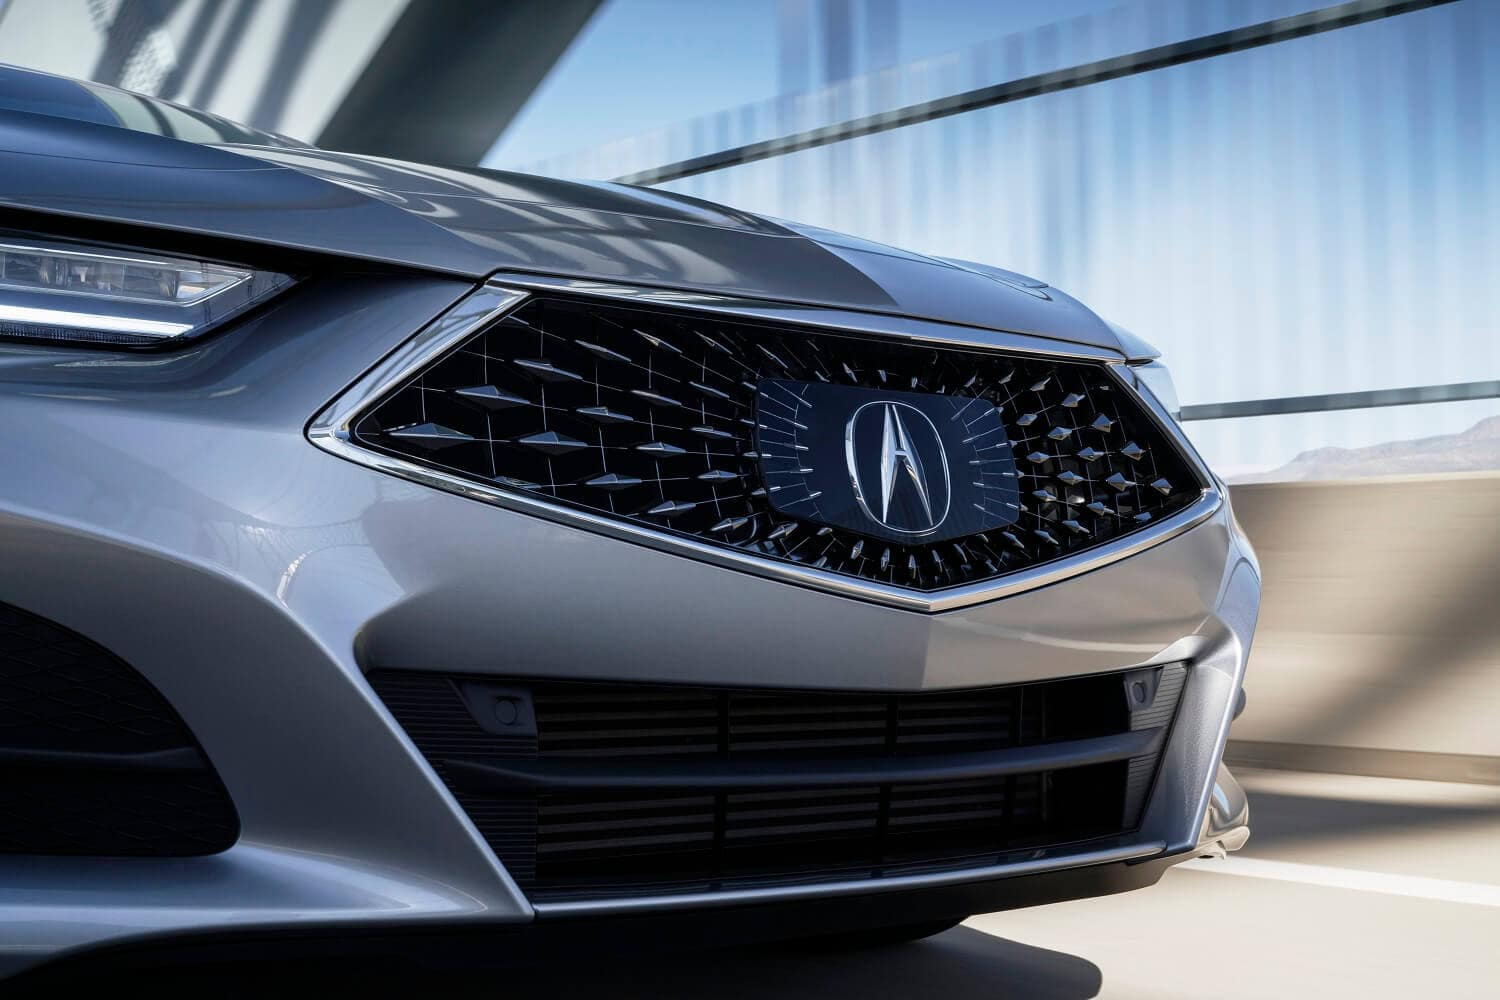 2021 Acura TLX Base Grill Shot